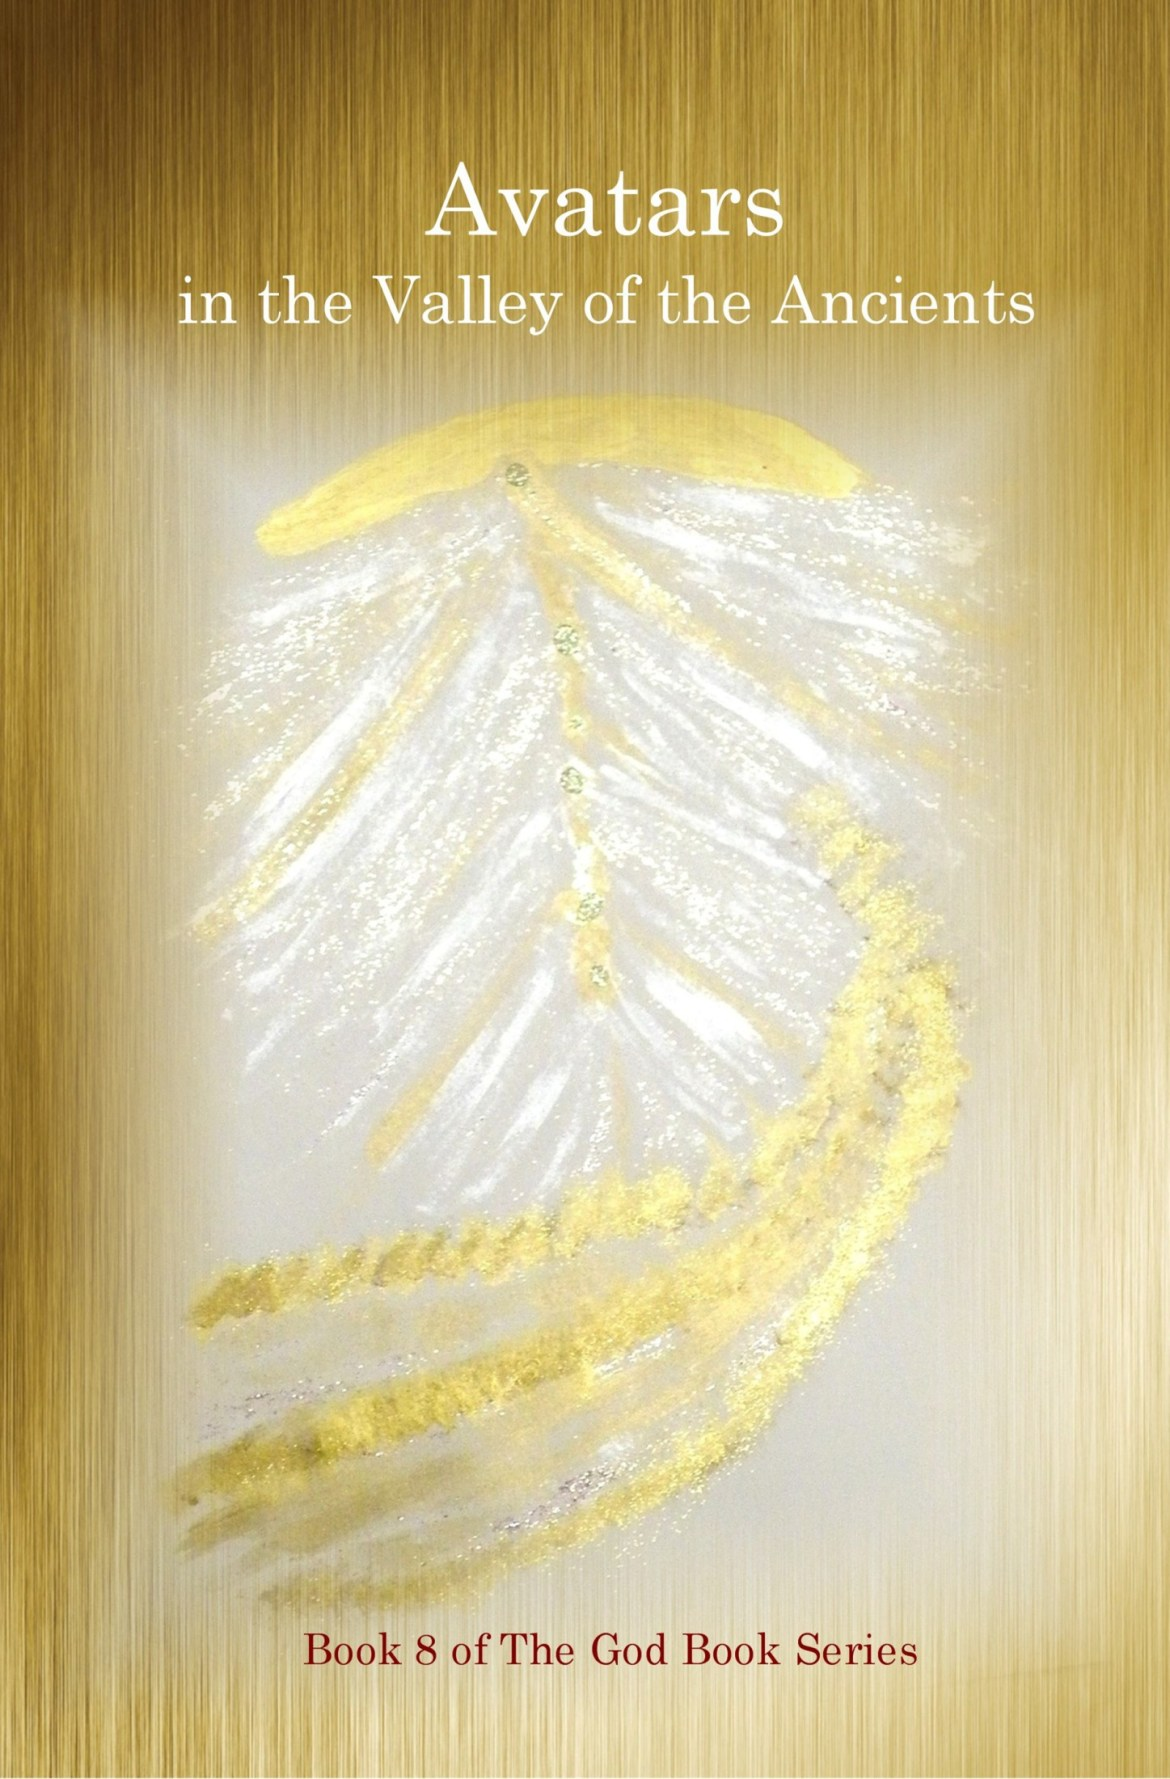 Avatars in the Valley of the Ancients – God Book #8